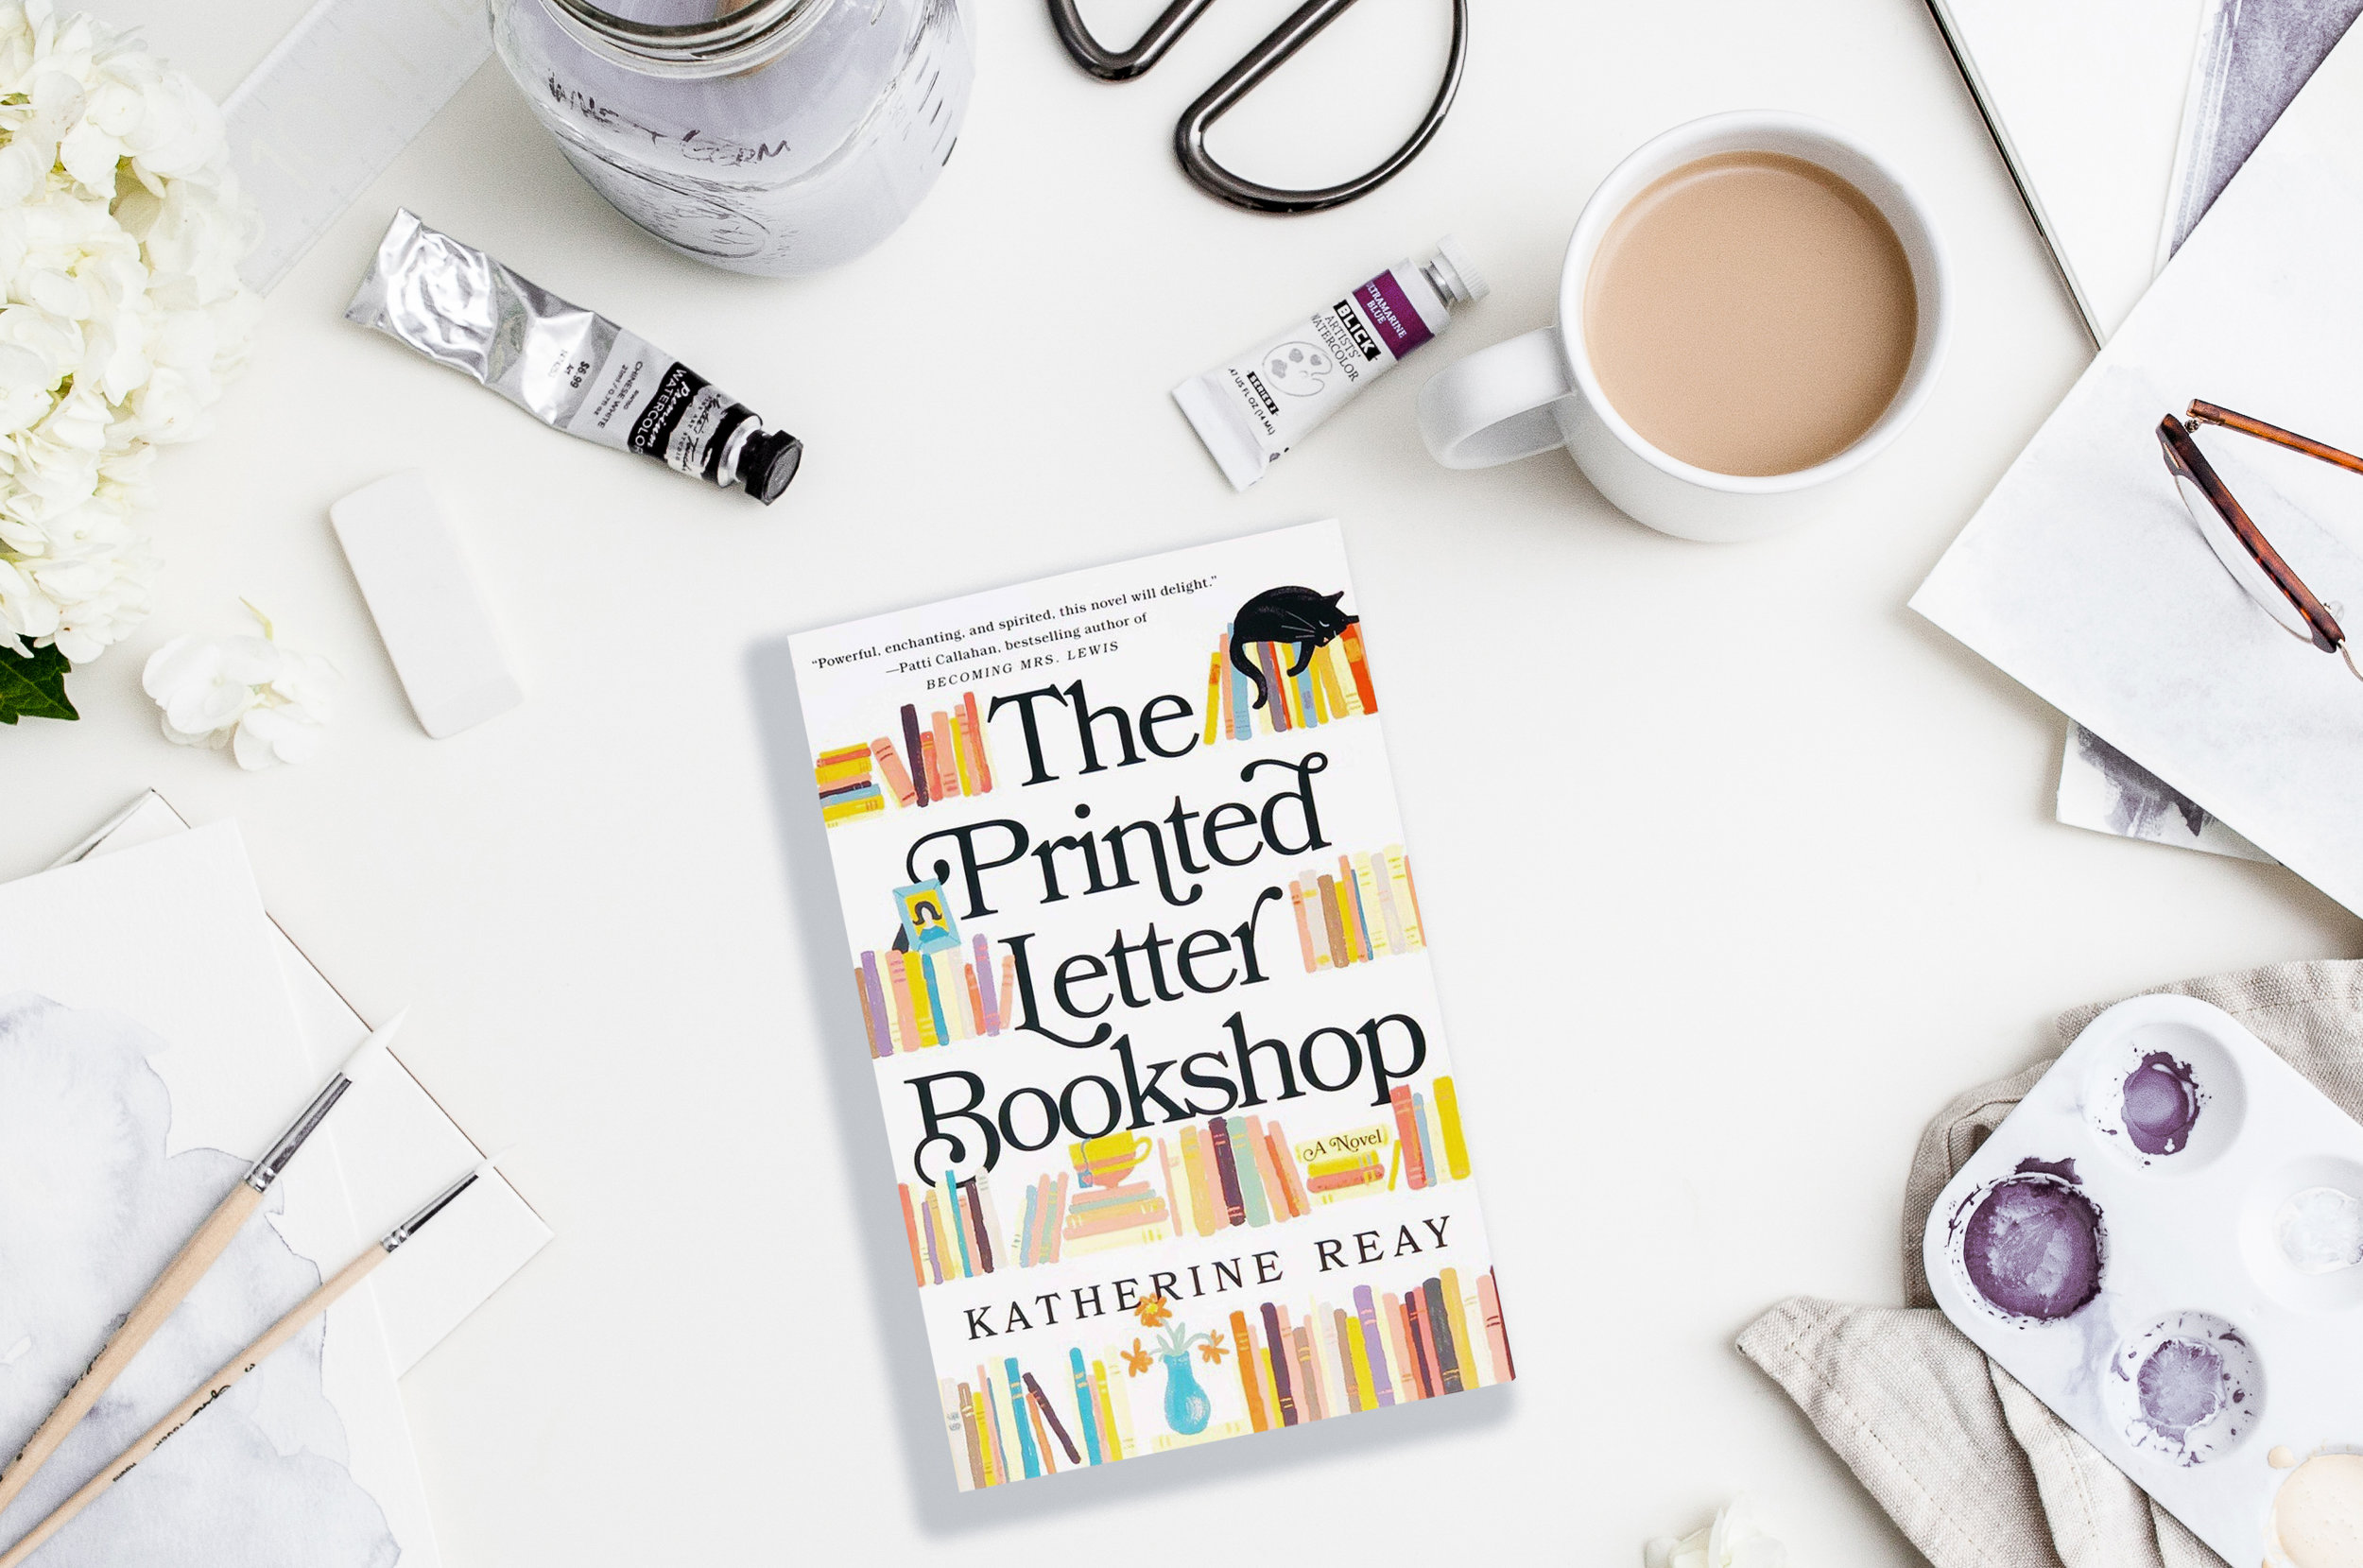 The Printed Letter Bookshop by Katherine Reay. Review by Jessica Mack on BrownPaperBunny.